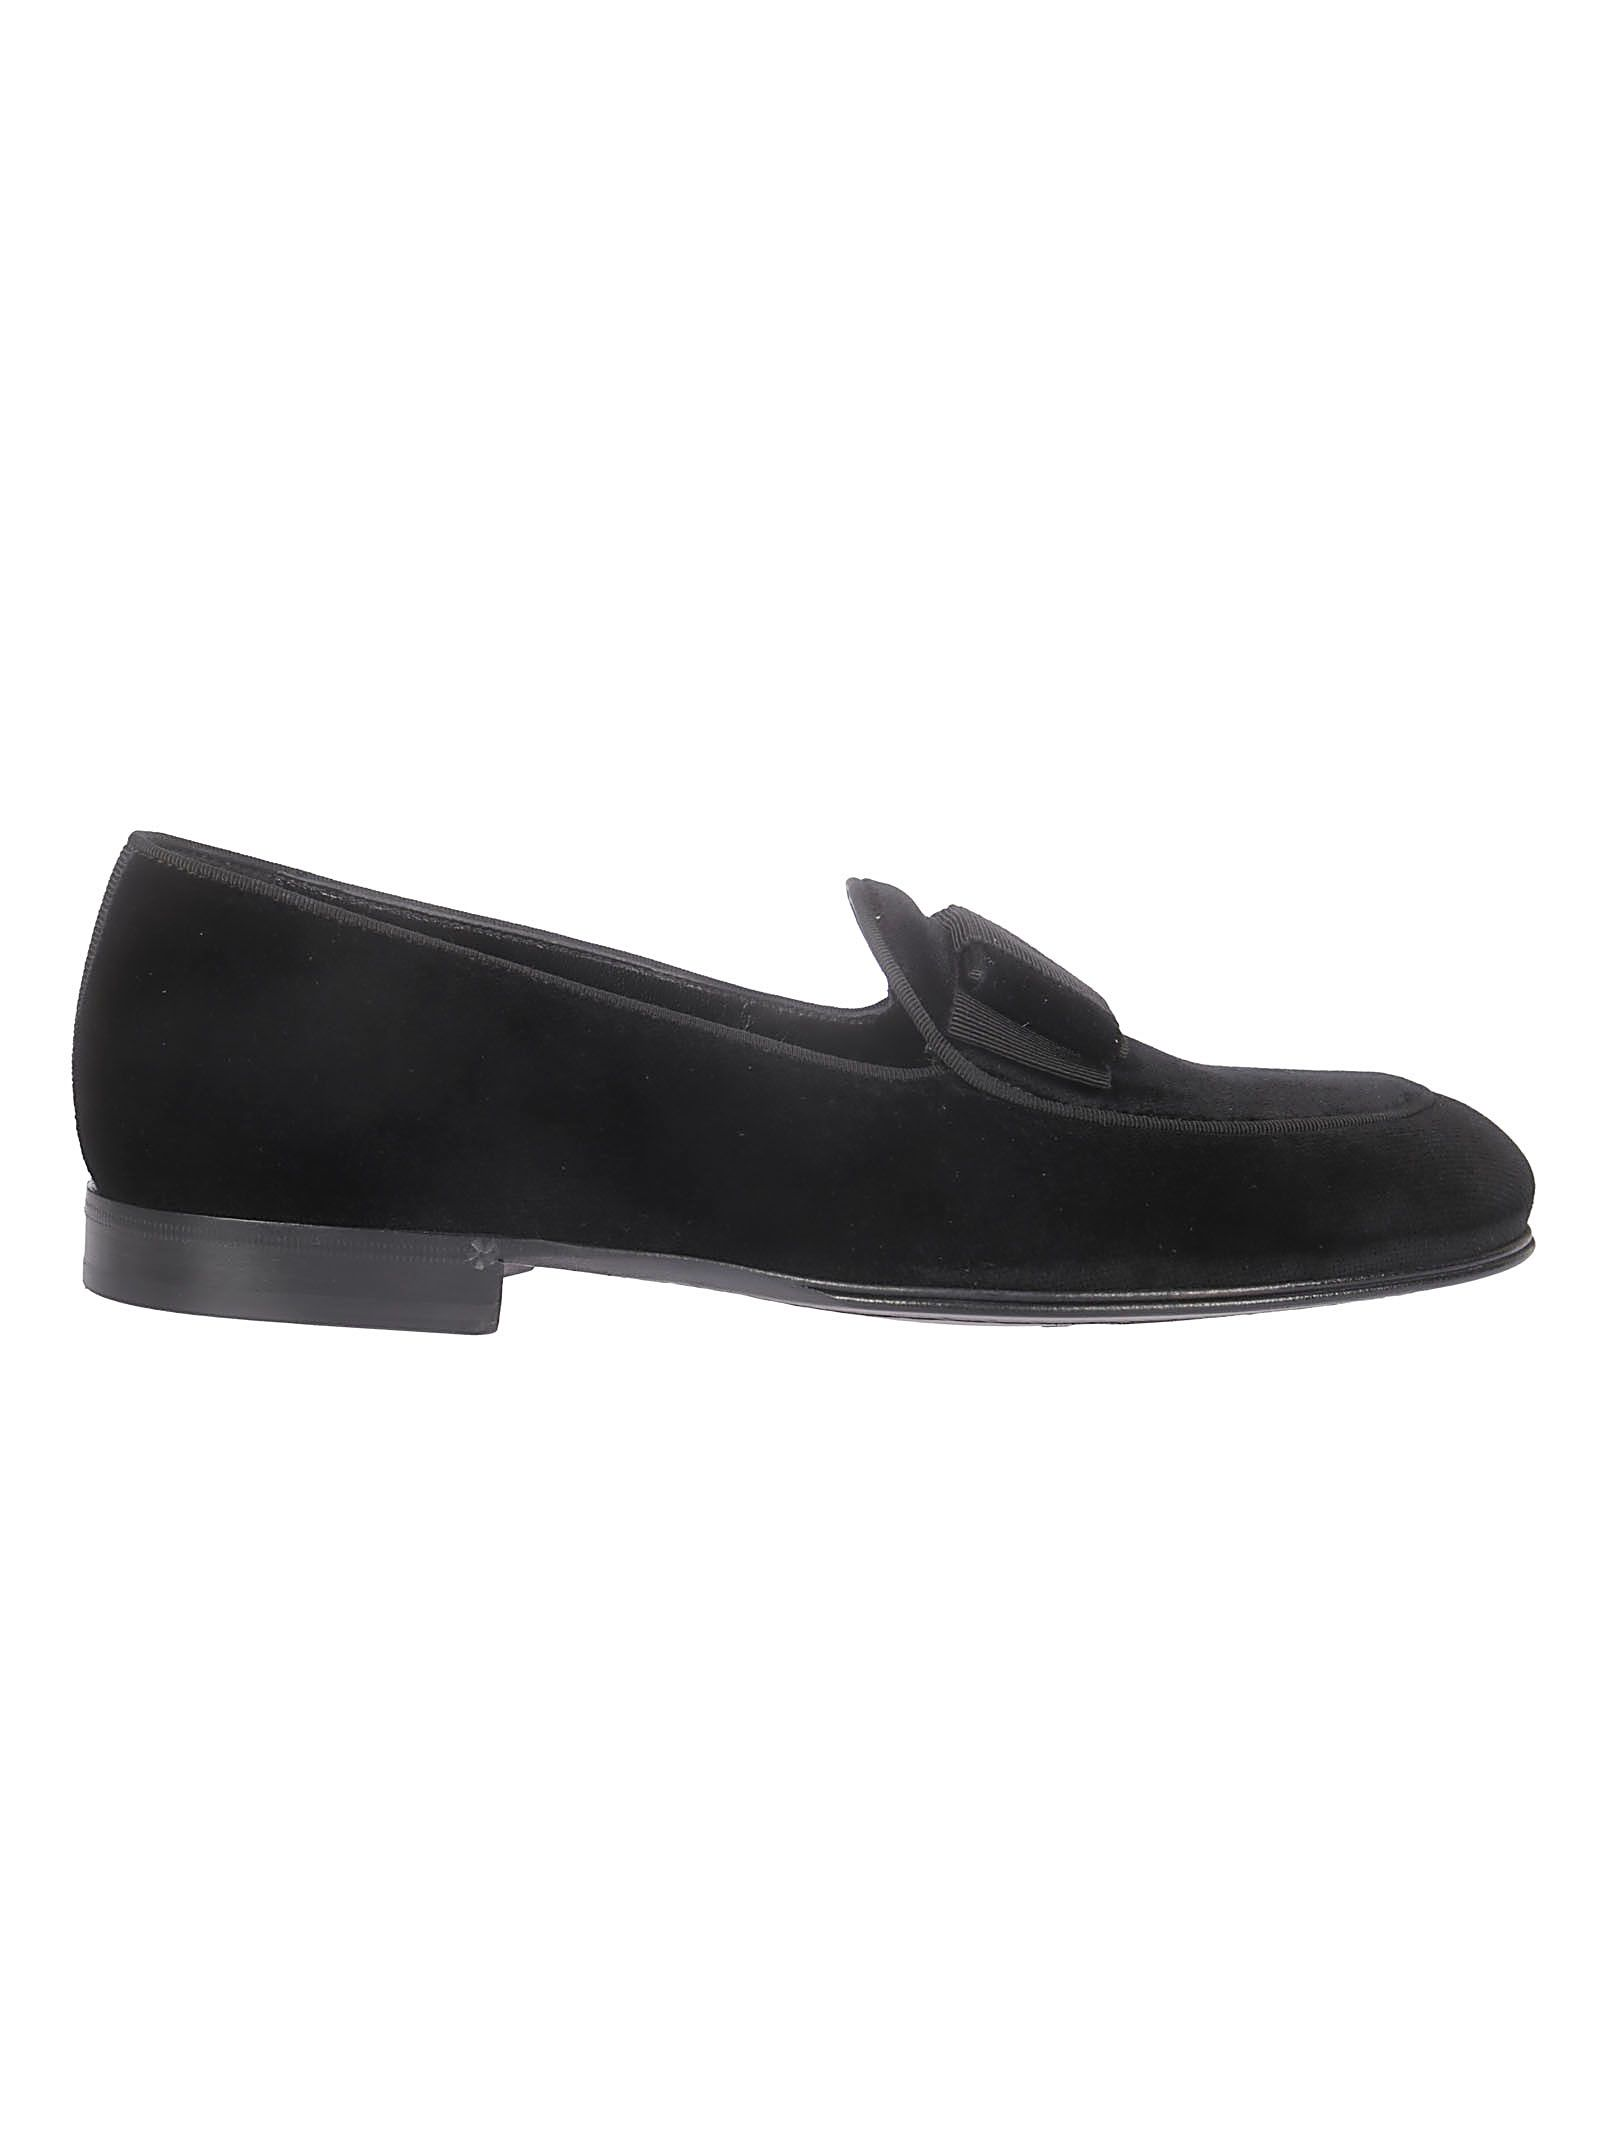 Dolce & Gabbana Shoes Dolce & Gabbana Bow Tie Loafers